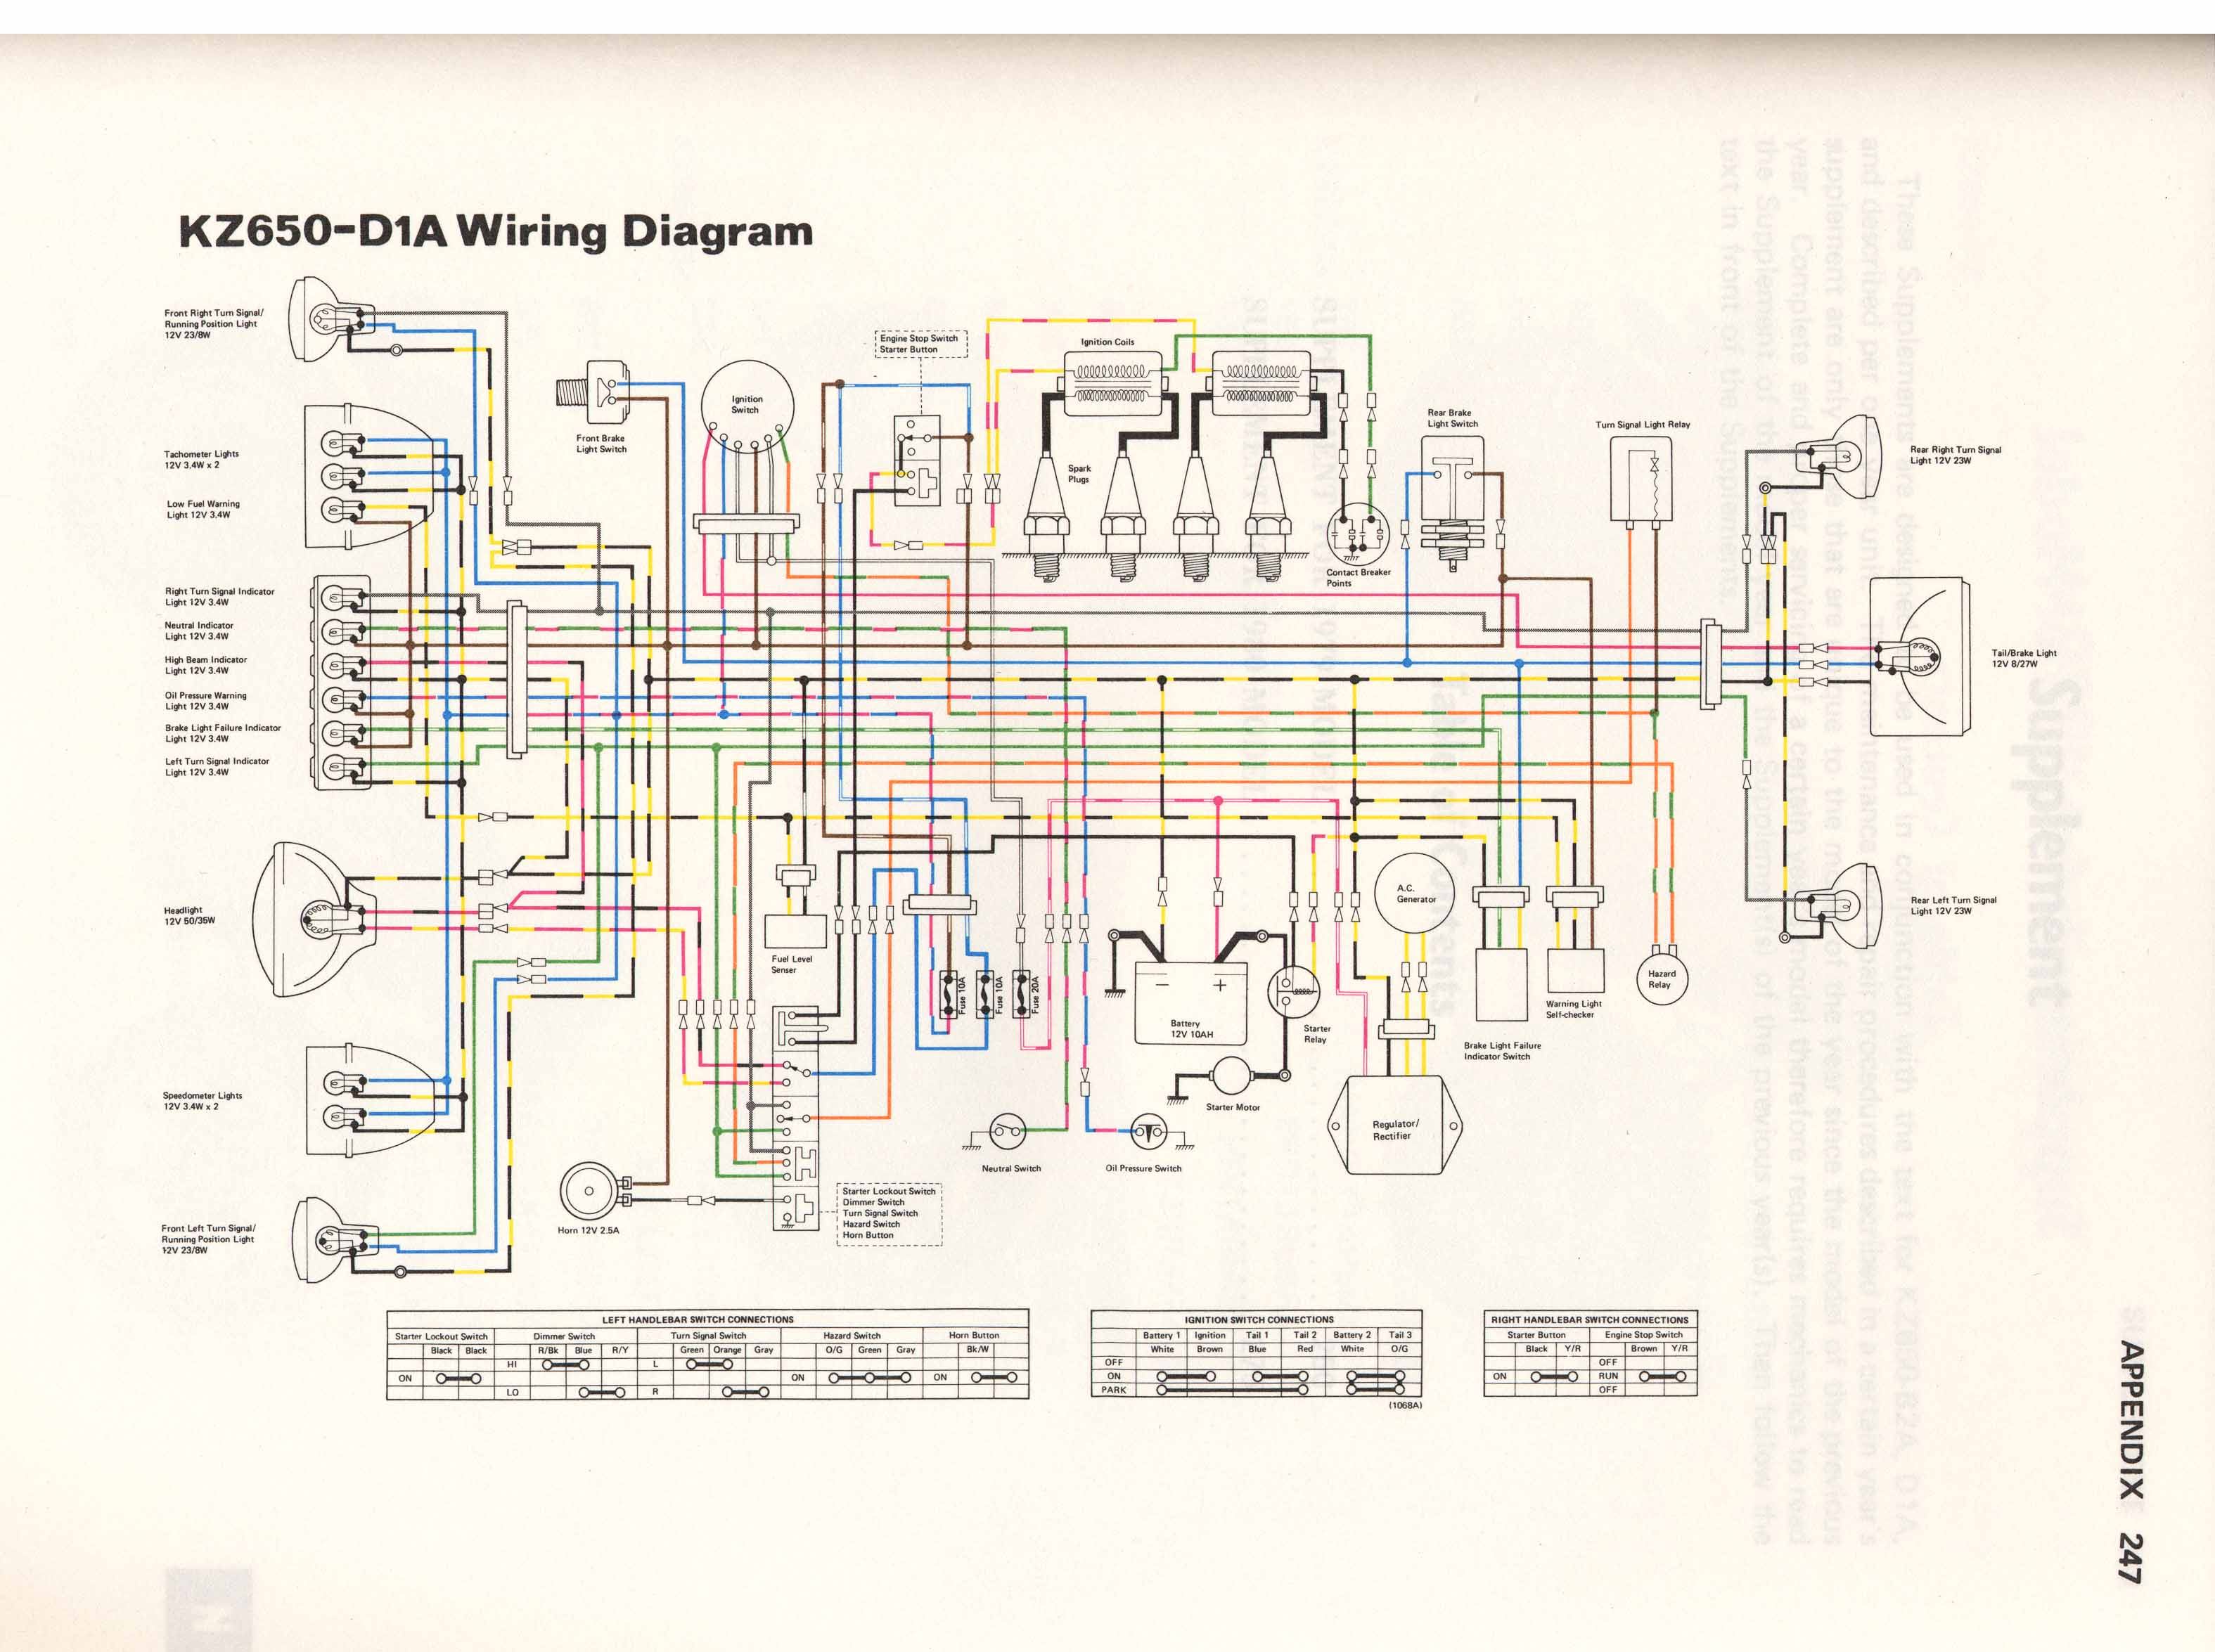 1982 Kawasaki Wiring Diagrams 200 Library. 1982 Kawasaki Wiring Diagrams 200. Kawasaki. Free Auto Wiring Diagrams 2006 Kawasaki Klr650 At Scoala.co